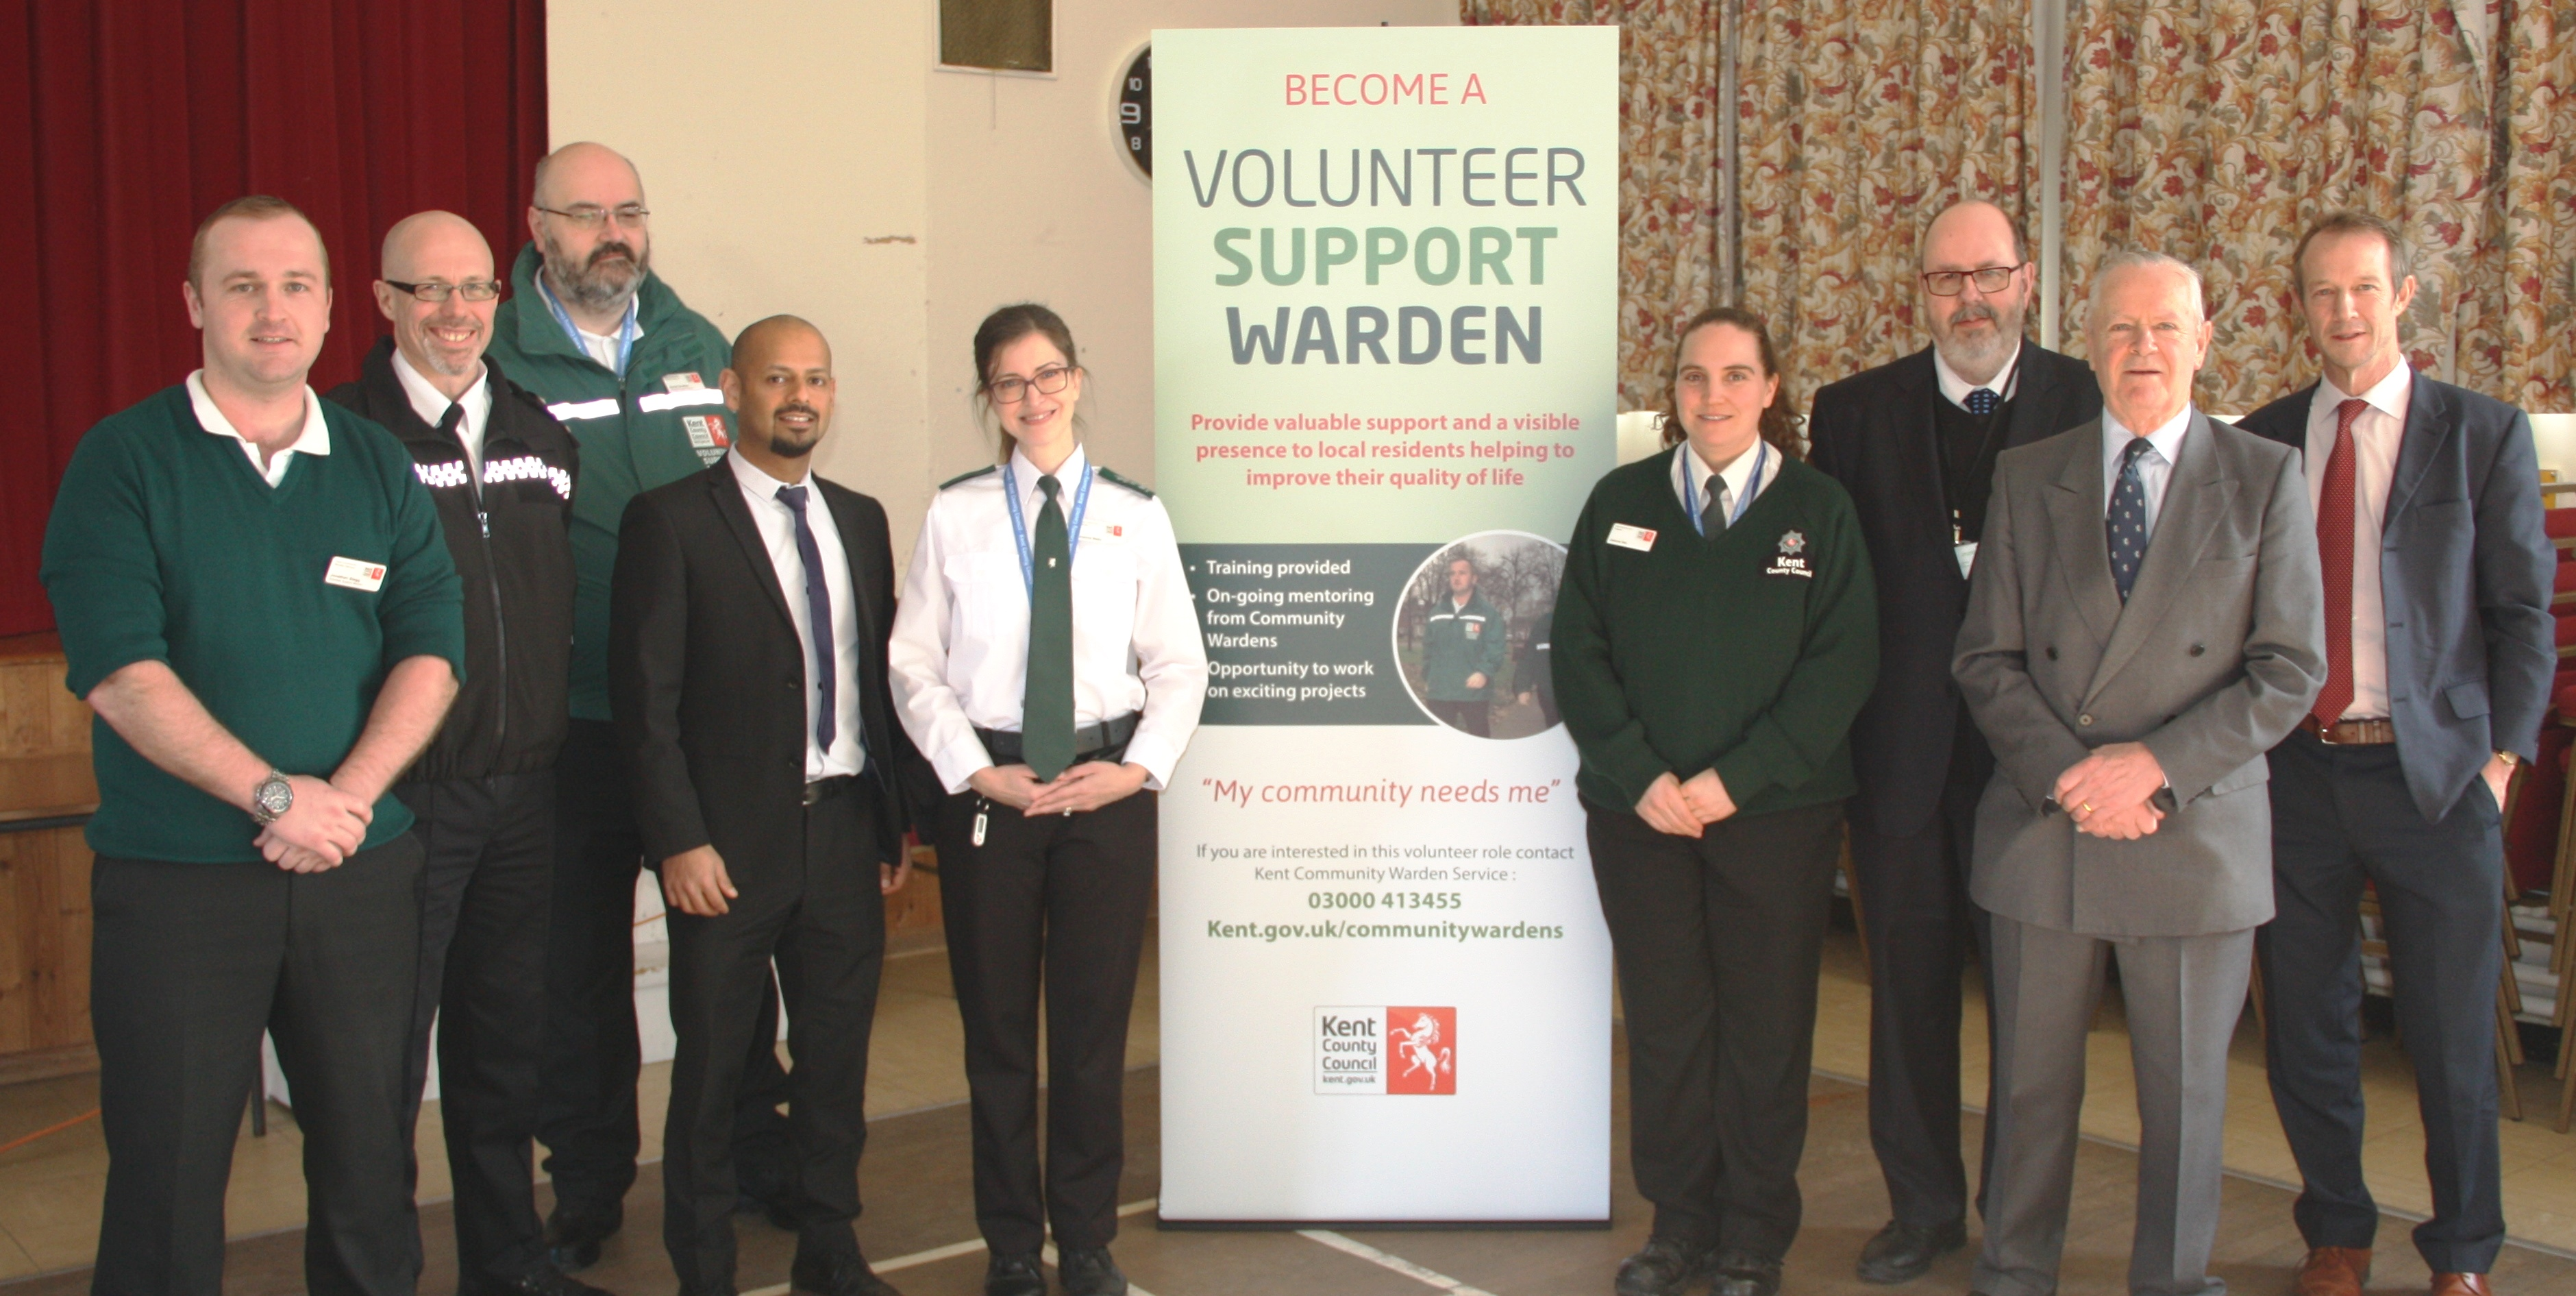 Exciting new volunteer role helping your community